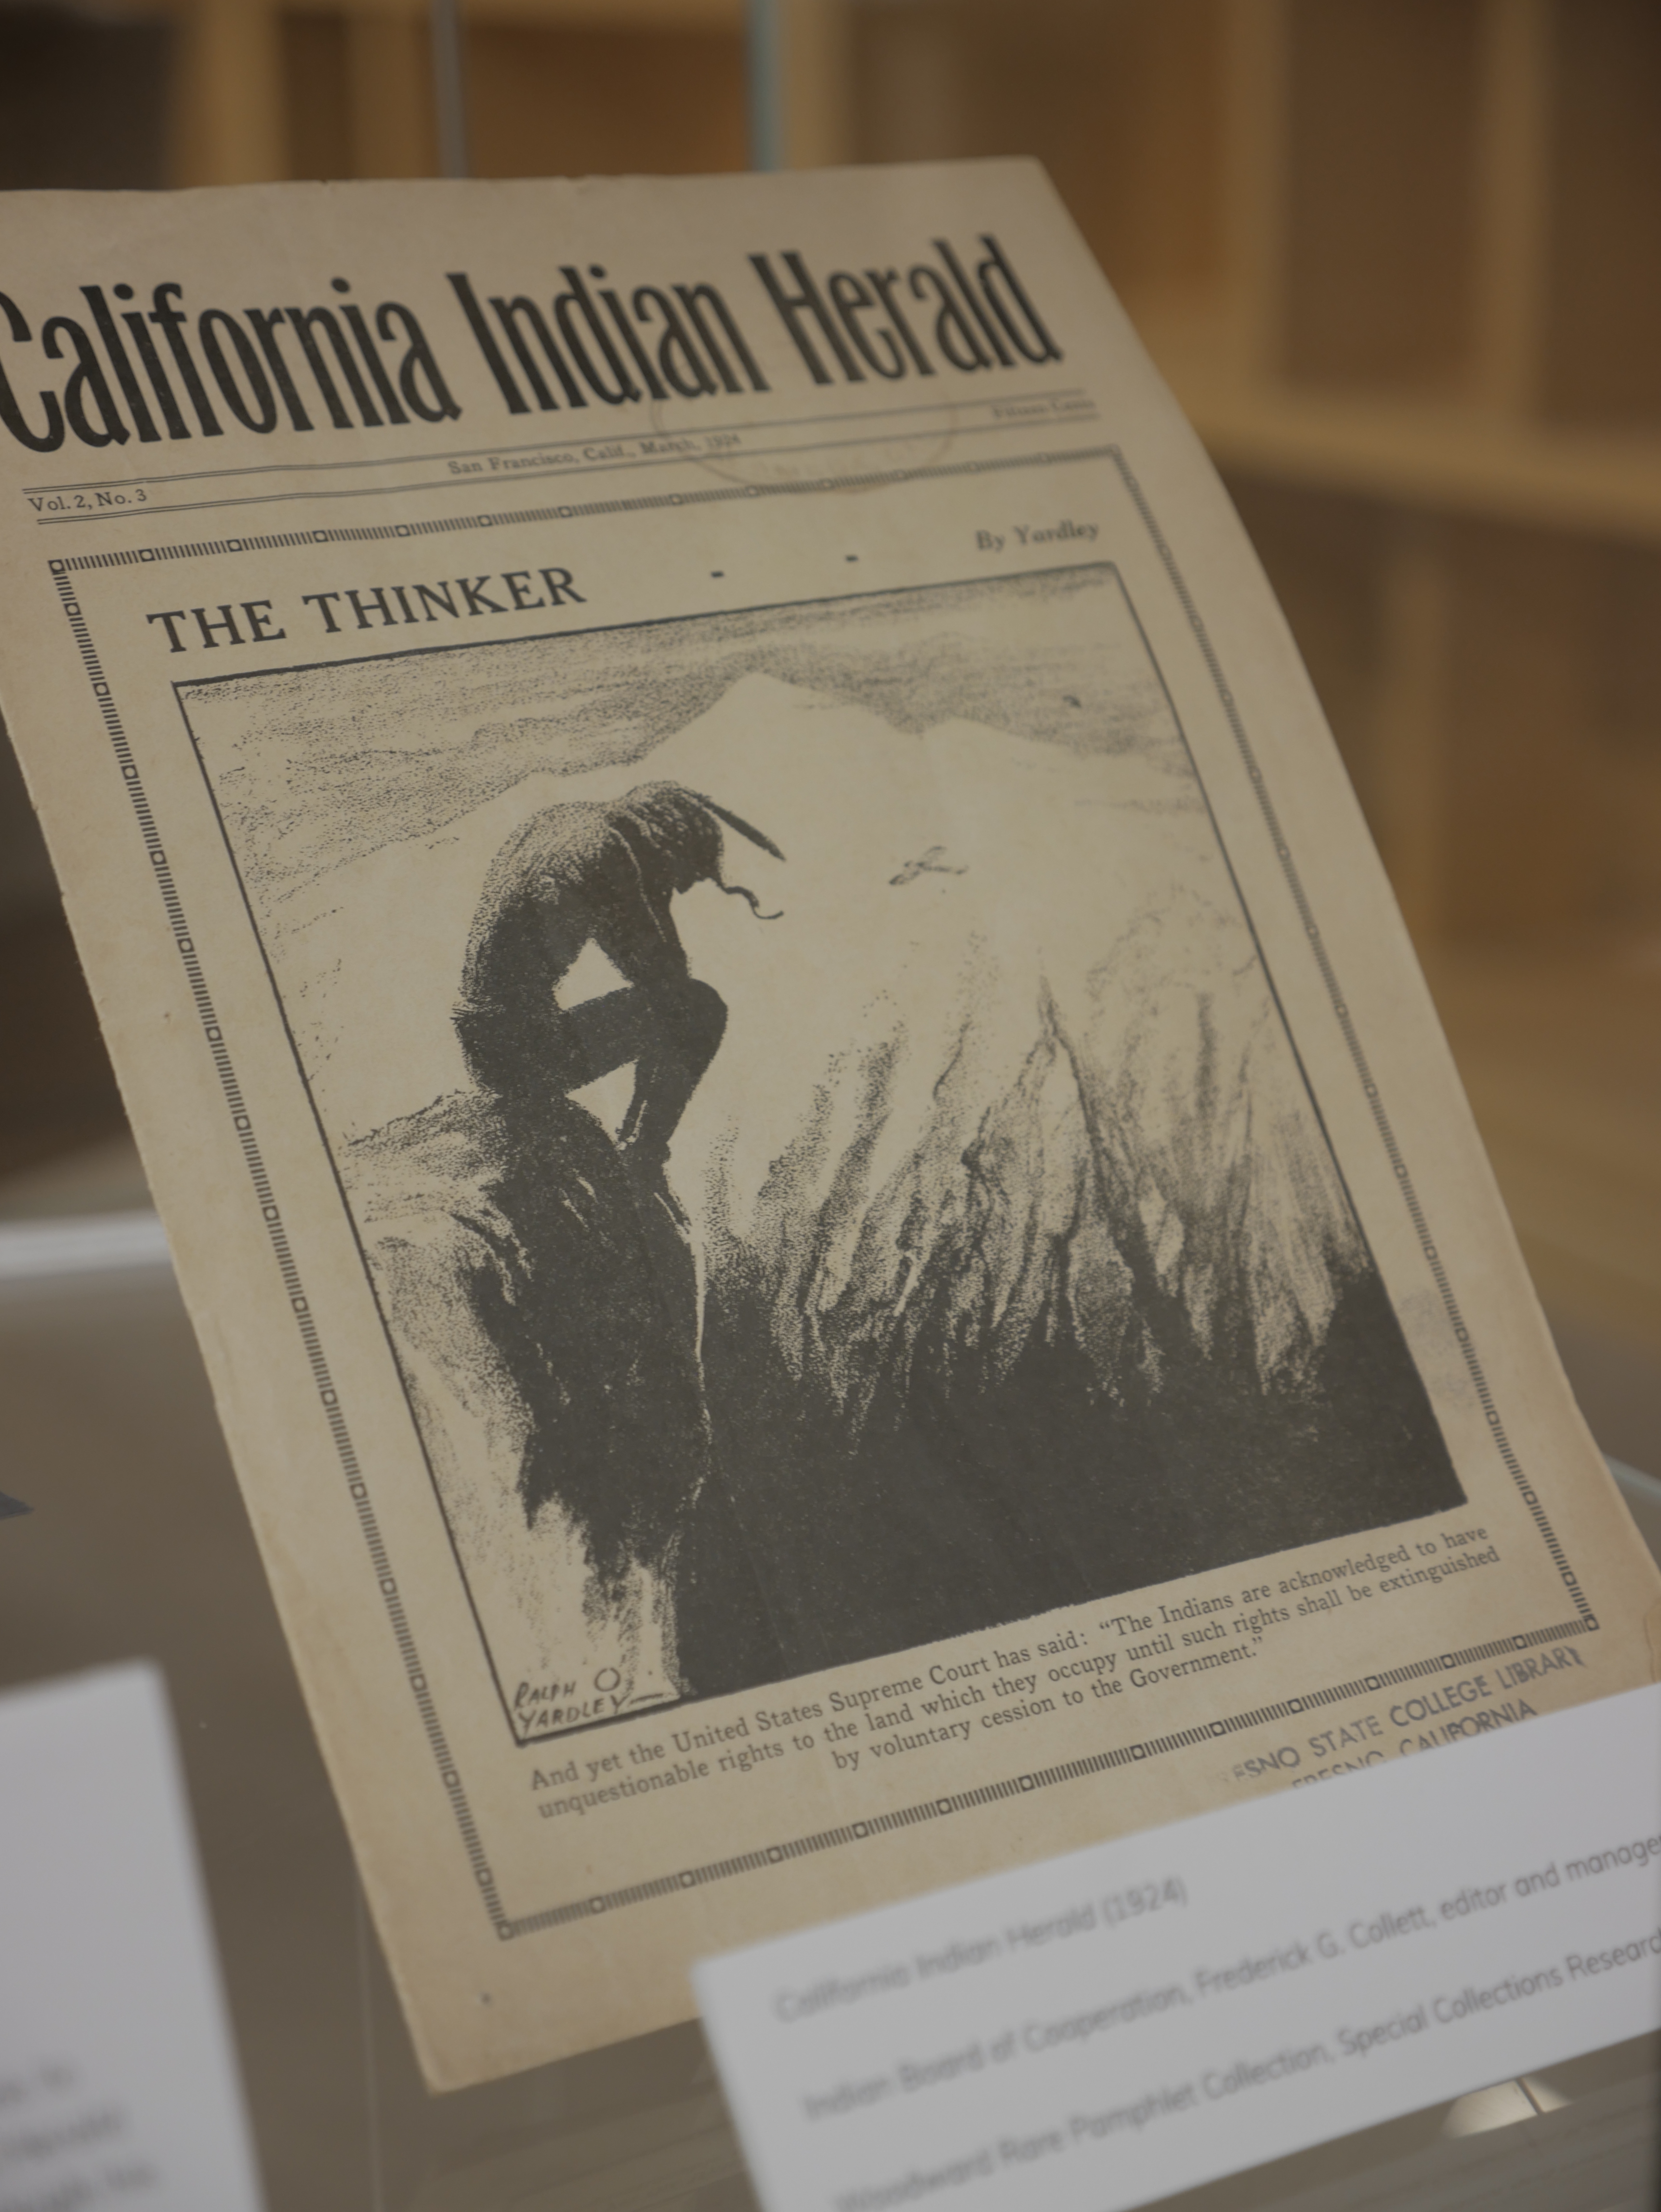 California Indian Herald cover from the 1930s